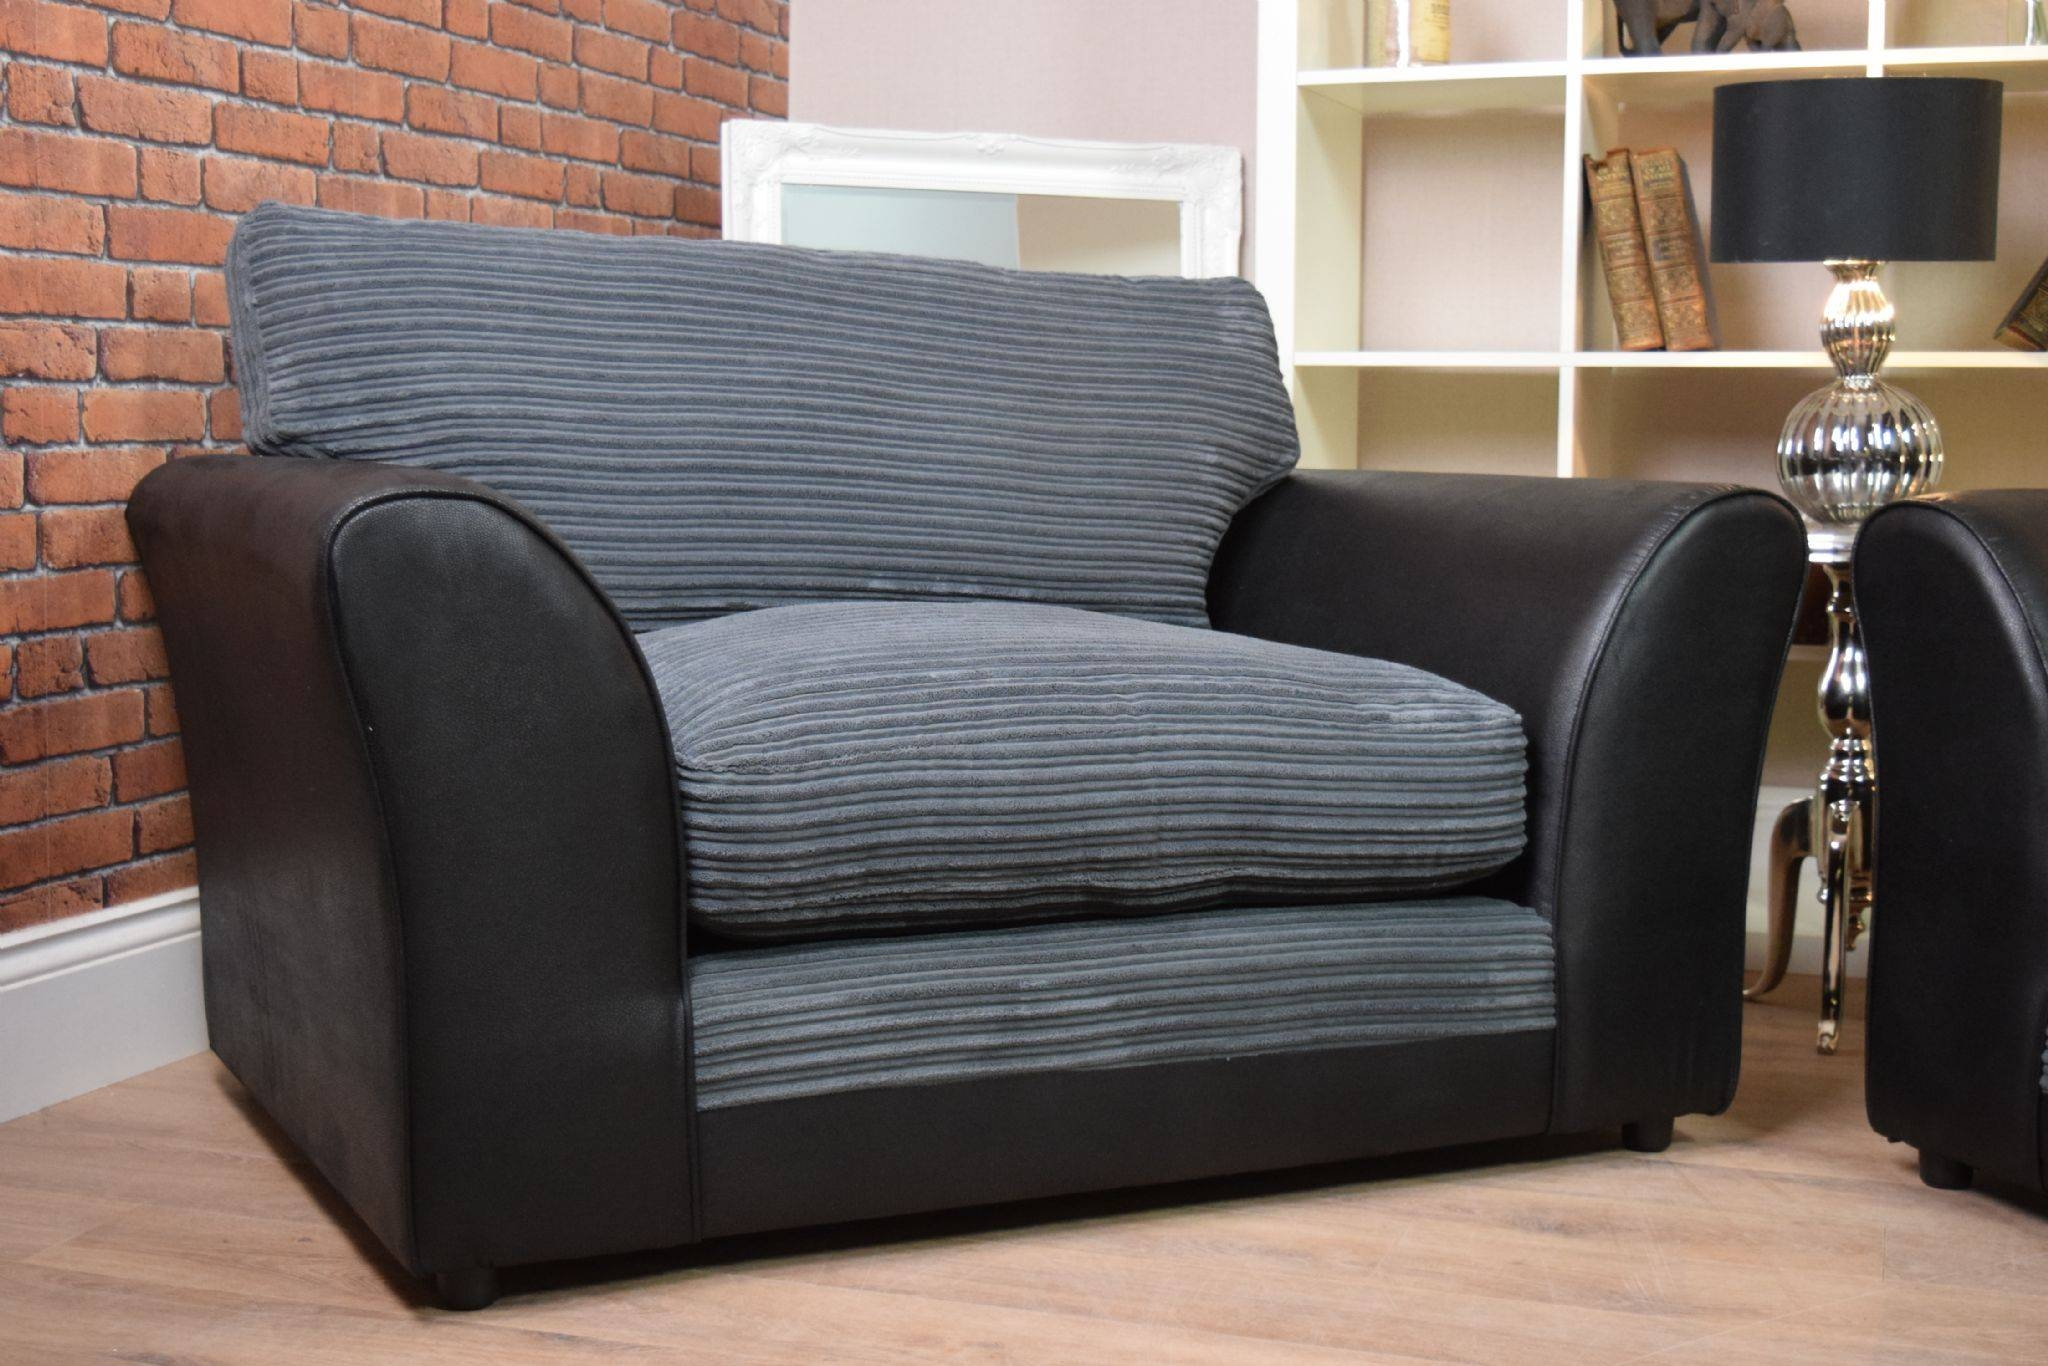 Set Harley Bailey 3 Seater Sofa Cuddle Chair Suite Set – Black Regarding 3 Seater Sofa And Cuddle Chairs (View 18 of 30)